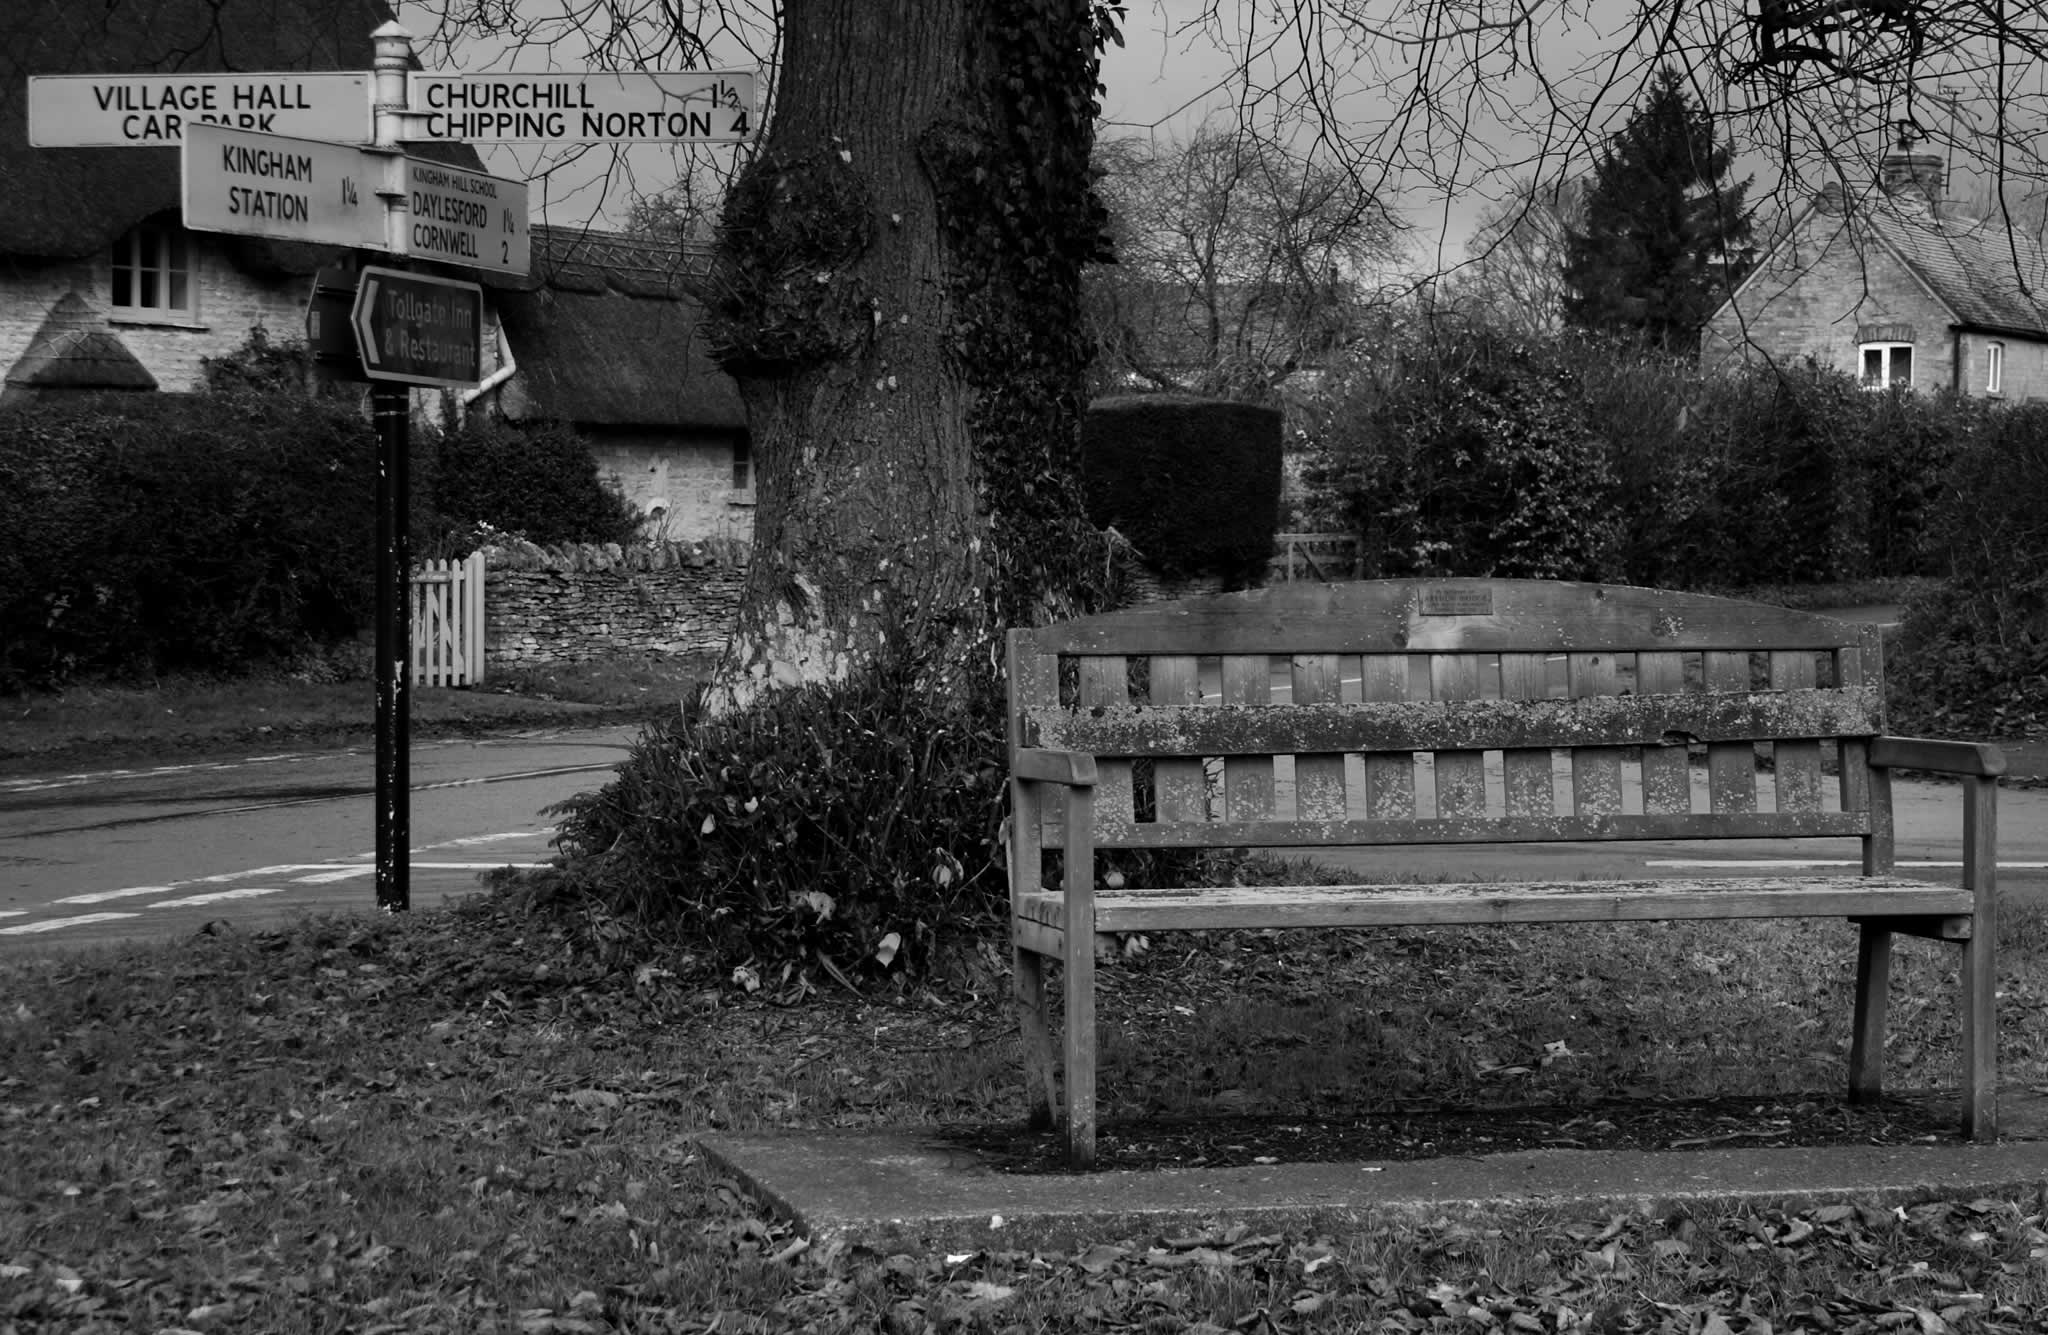 Bench in Kingham